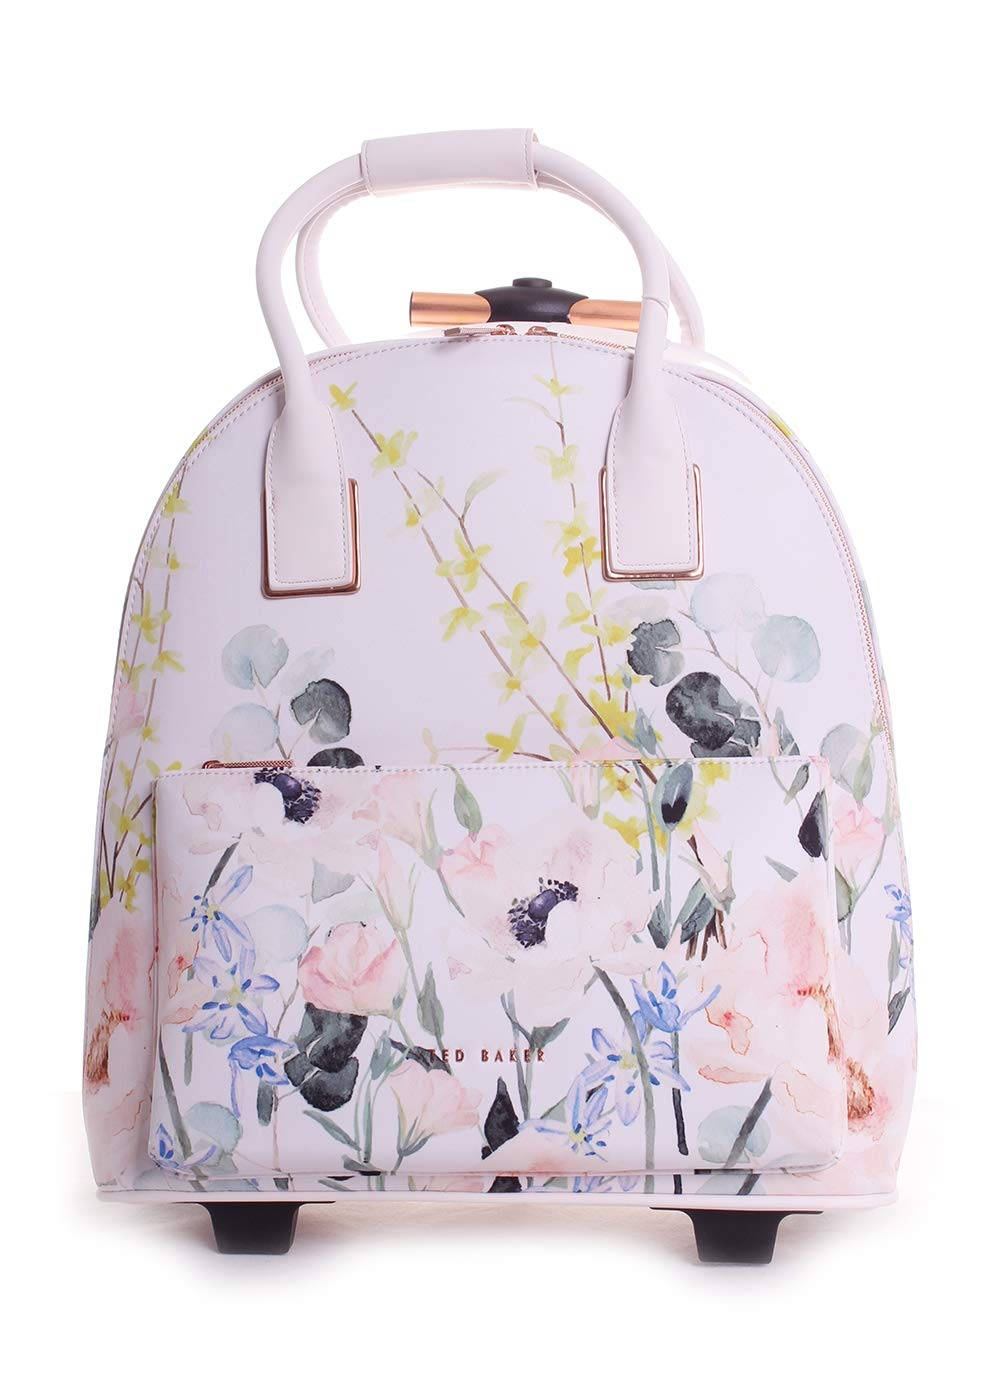 Ted Baker Elianna Valise 2 Roues Multicolore 46 cm